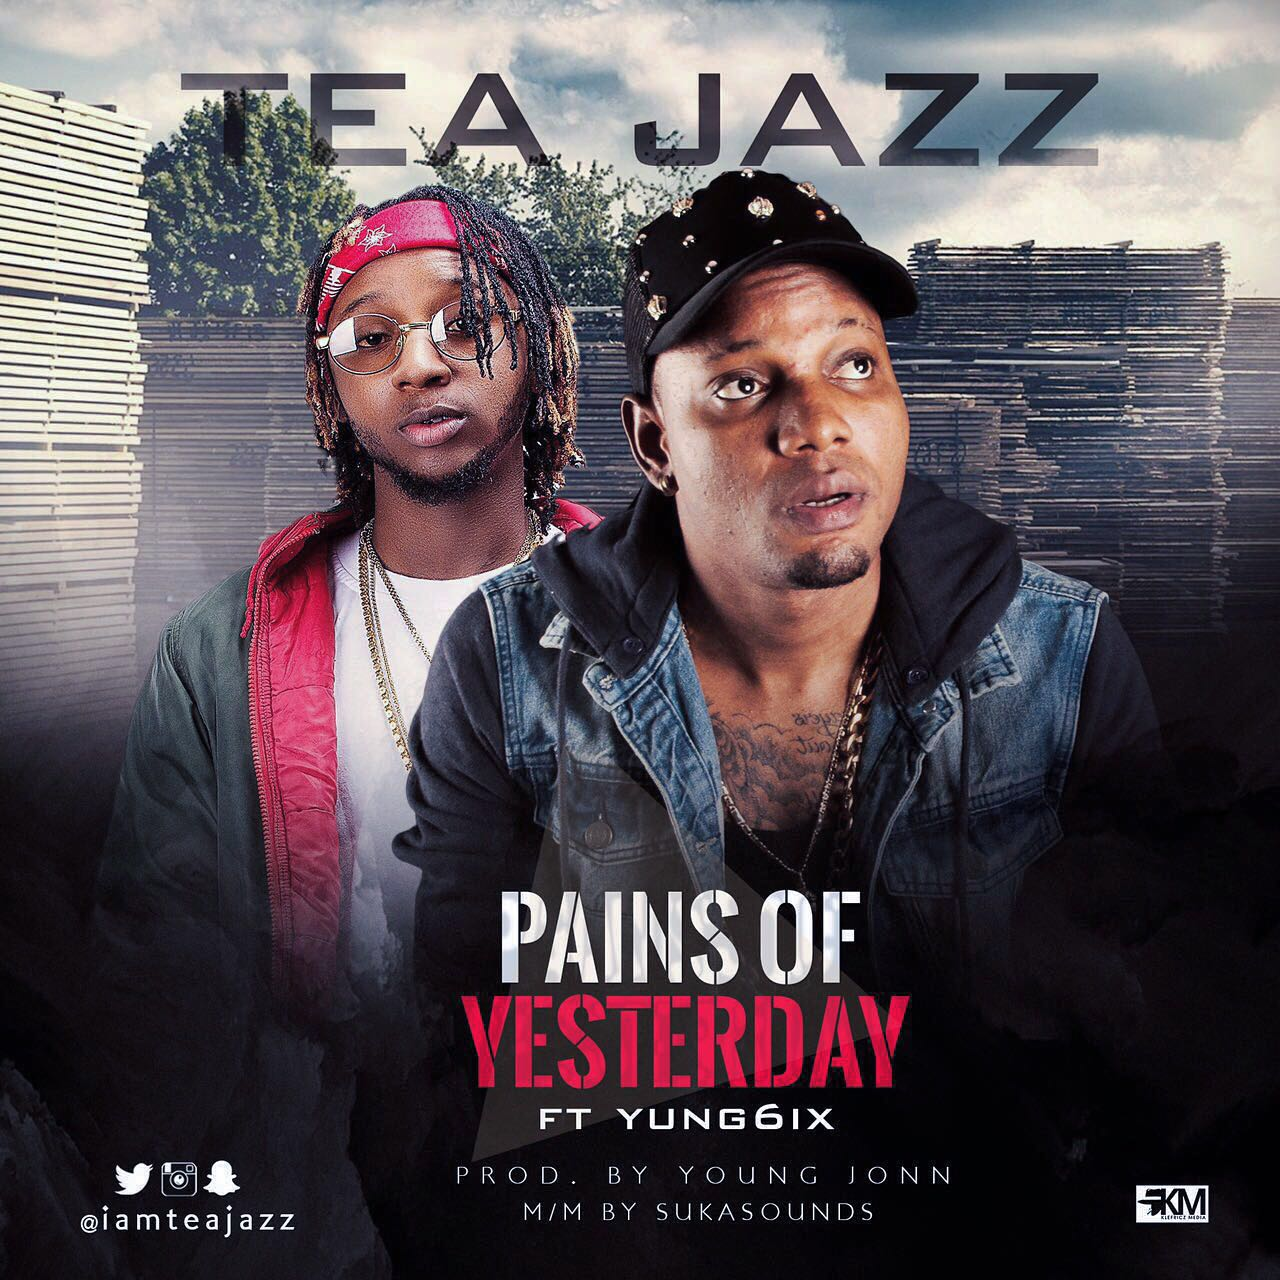 Tea Jazz ft. Yung6ix – Pains of Yesterday (Prod. Young Jonn)